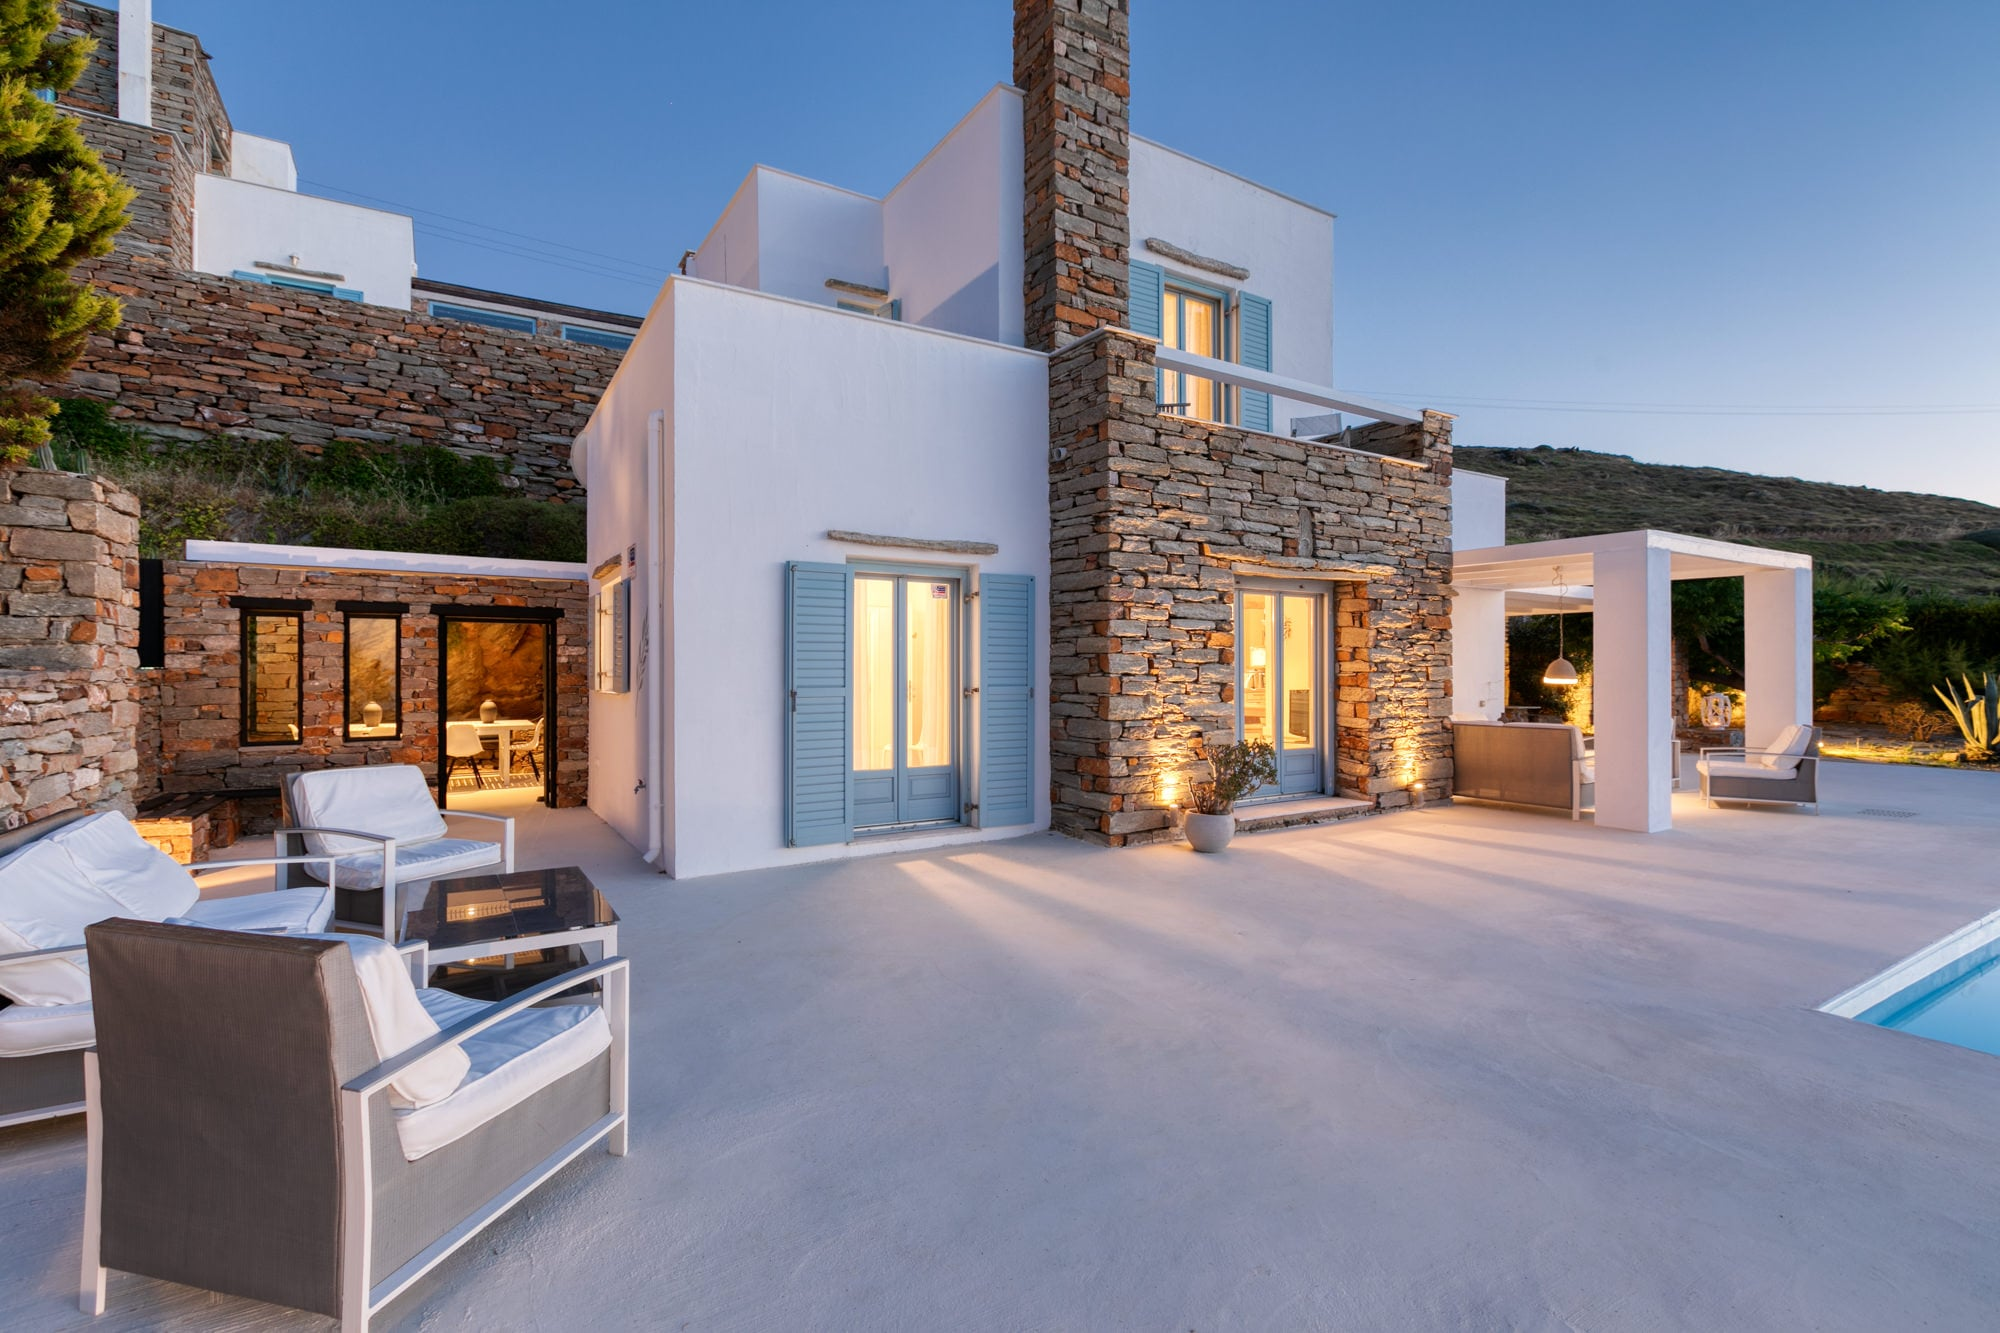 Property Image 1 - Contemporary 4 bedroom villa with private pool and breathtaking views